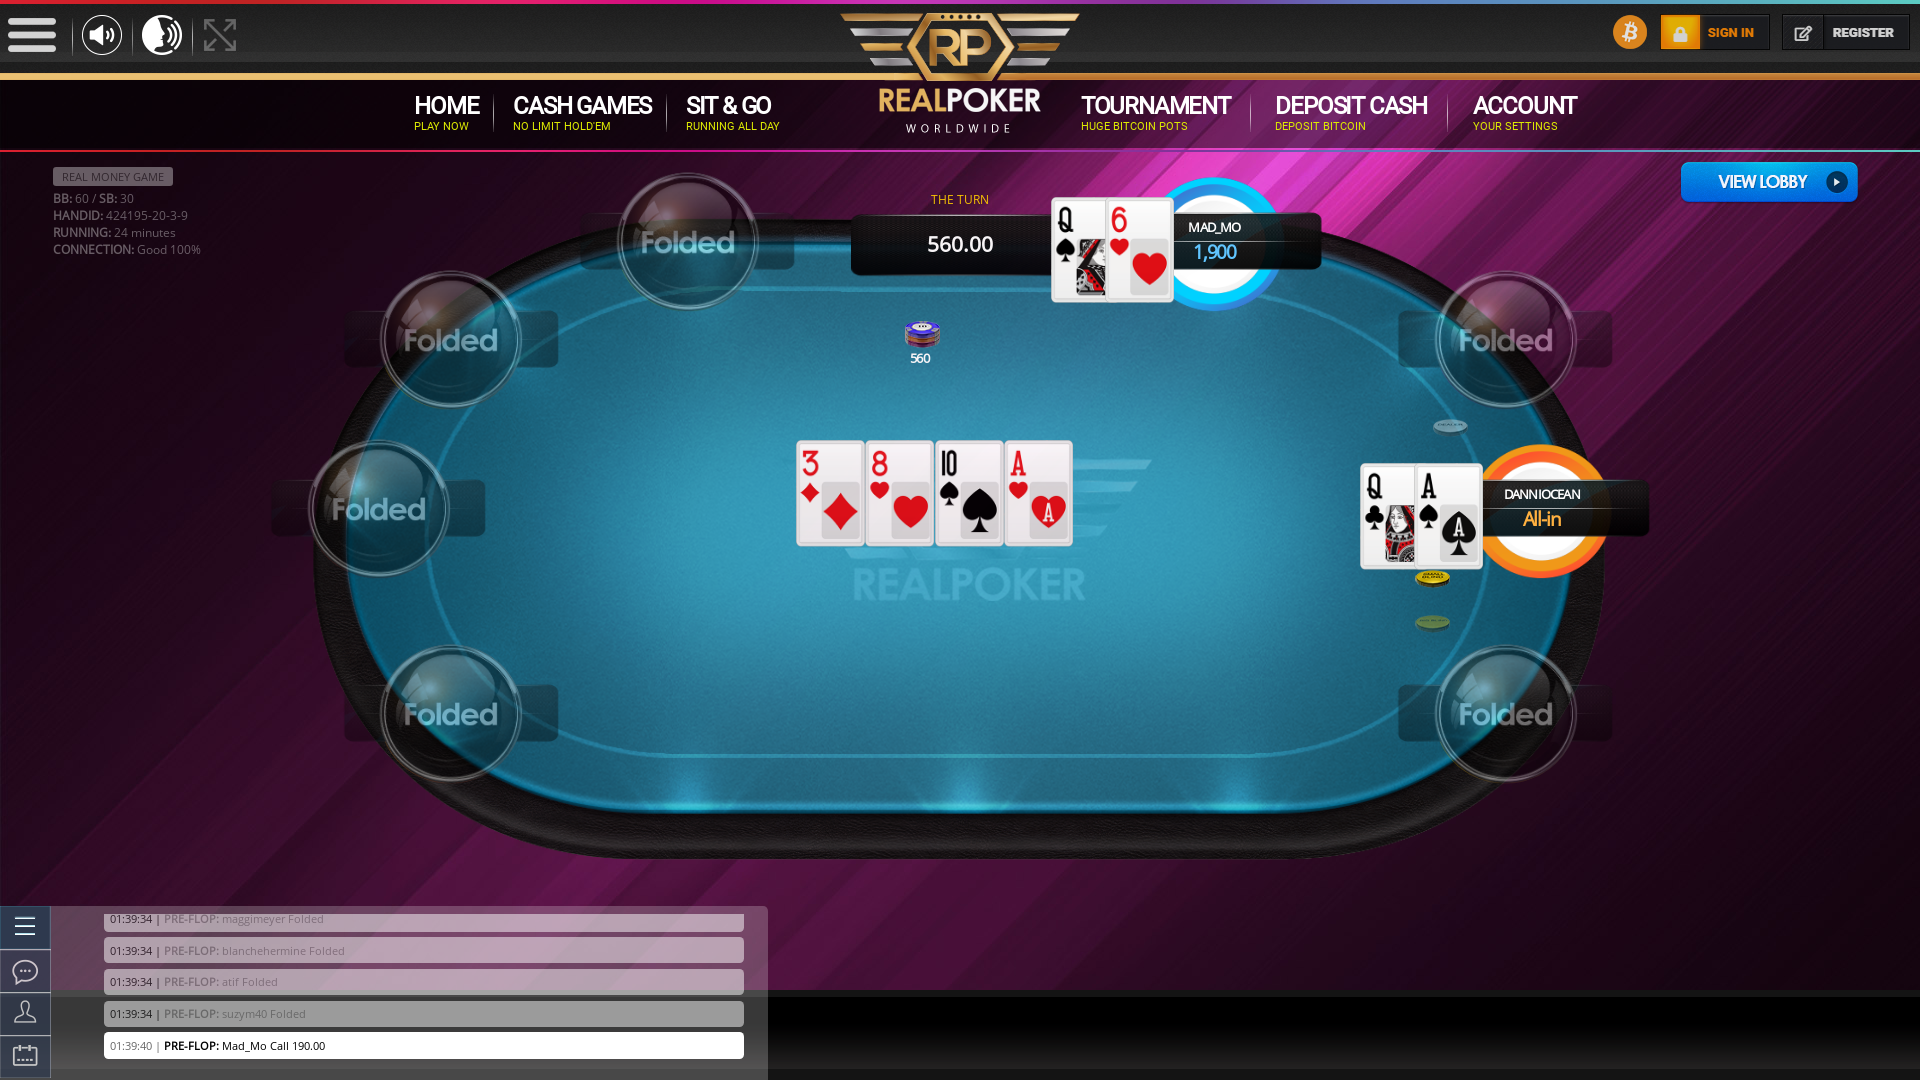 Real poker on a 10 player table in the 24th minute of the game